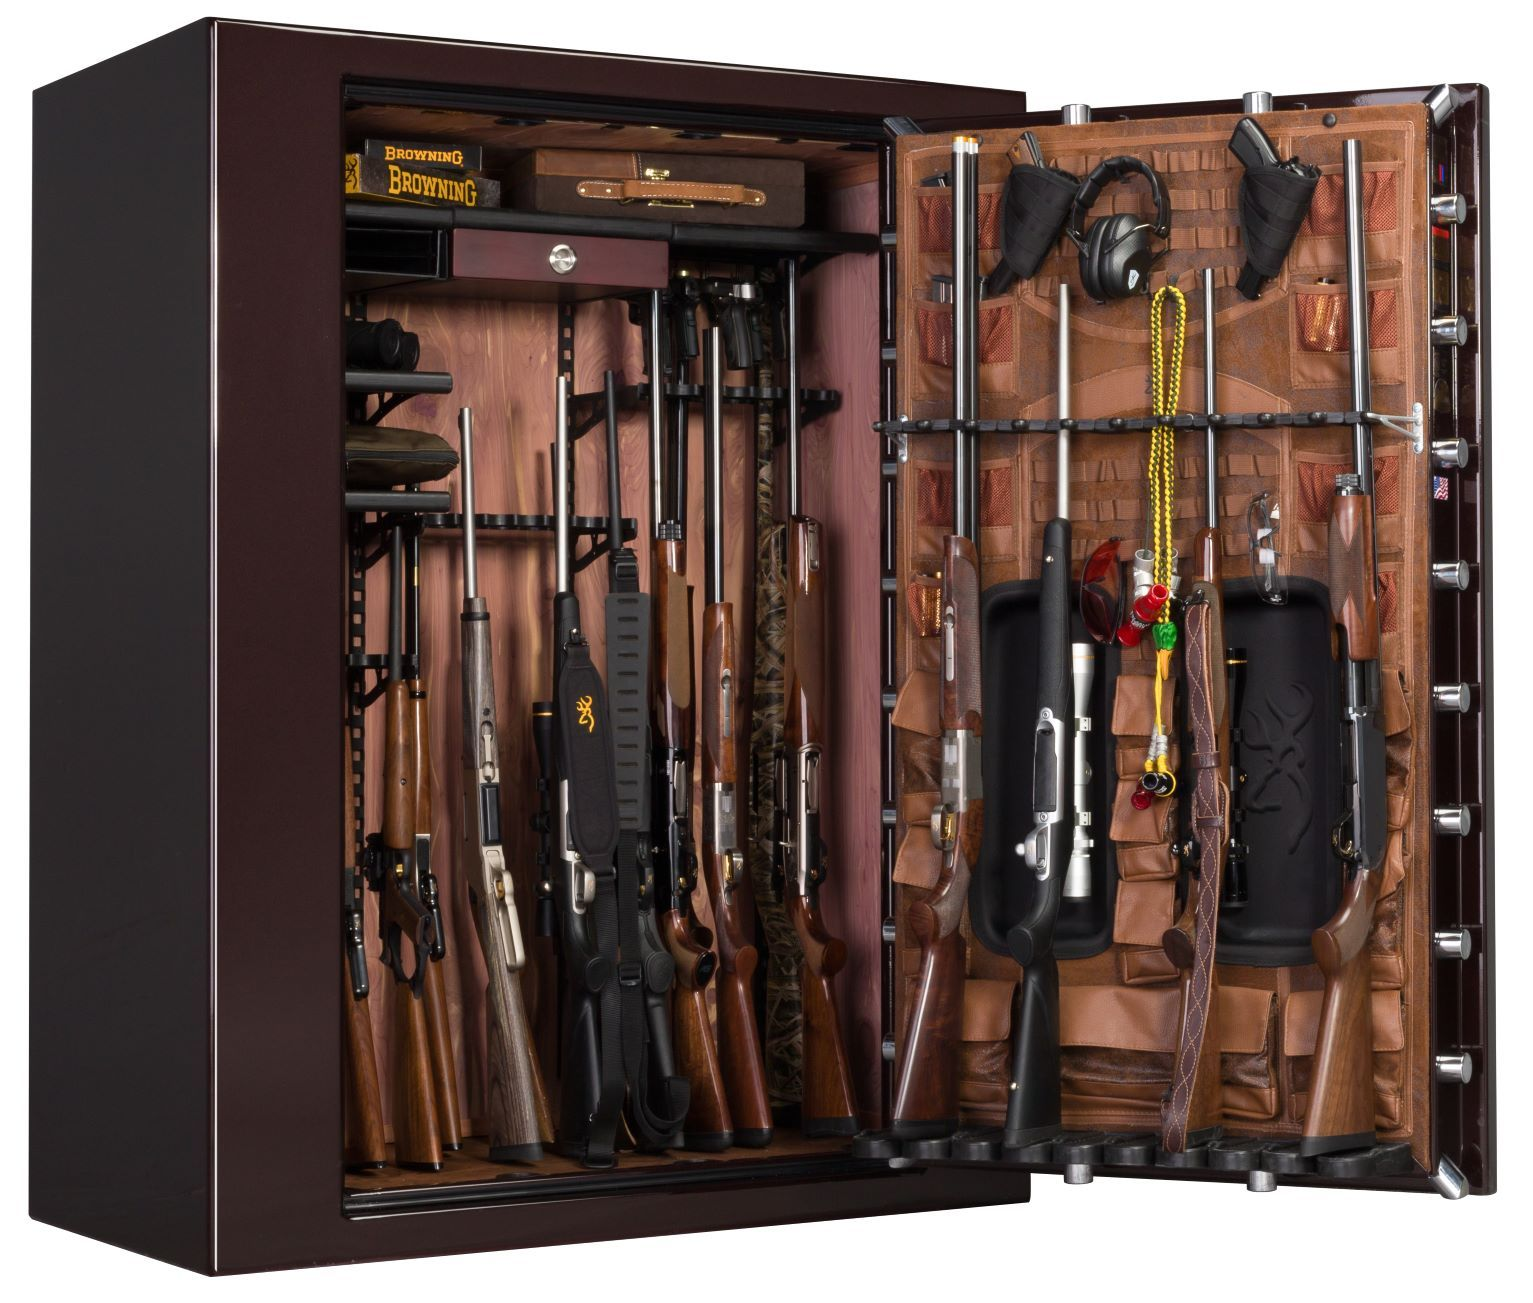 Gun Safes & Rifle Safe Products - Browning PP49 Platinum Plus Gun Safe - 2019 Model